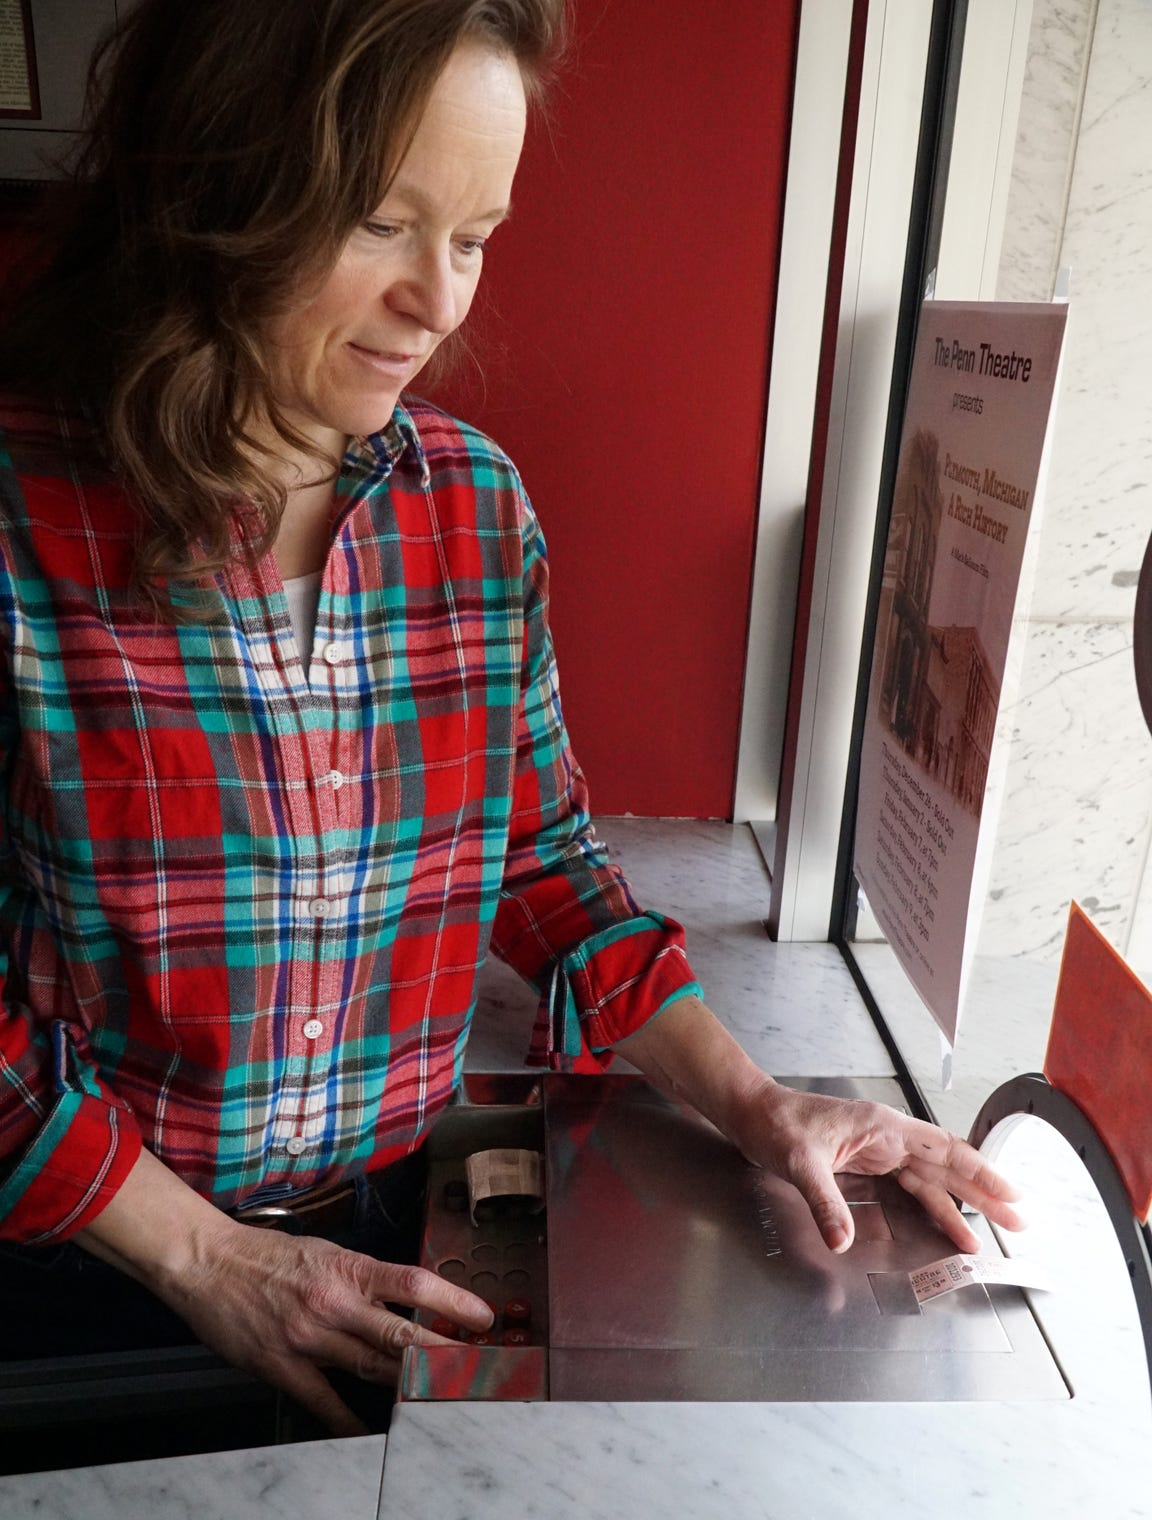 Ellen Elliott punches a couple of tickets out of the WWII-era AutoMaticket machine.